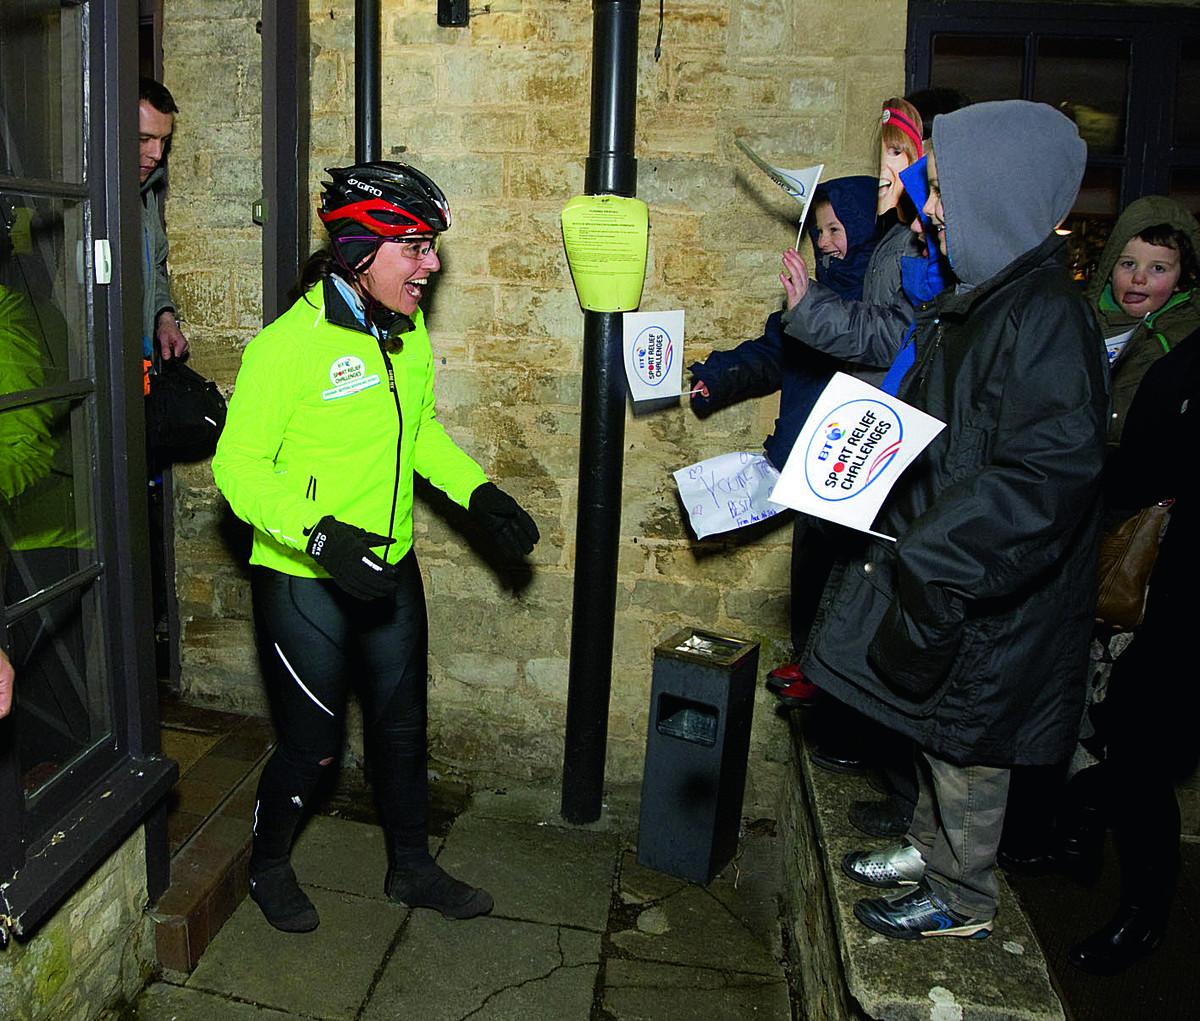 Davina McCall is greeted by cheering children at Killingworth Castle, Wootton, after she arrived for a stop during her Sport Relief challeng